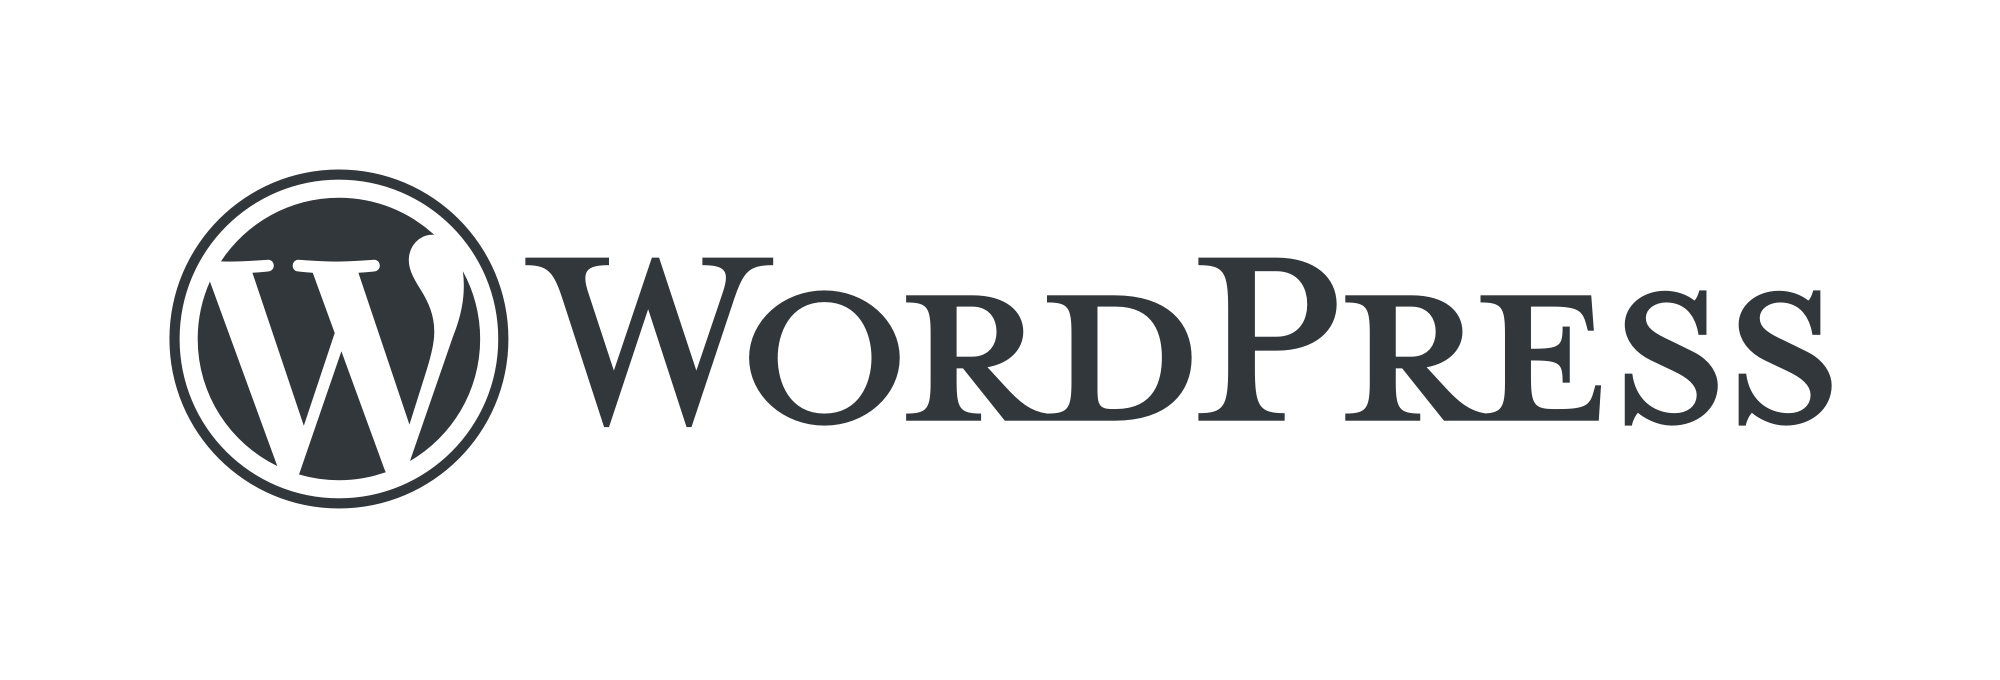 Wordpress site design and management experts.